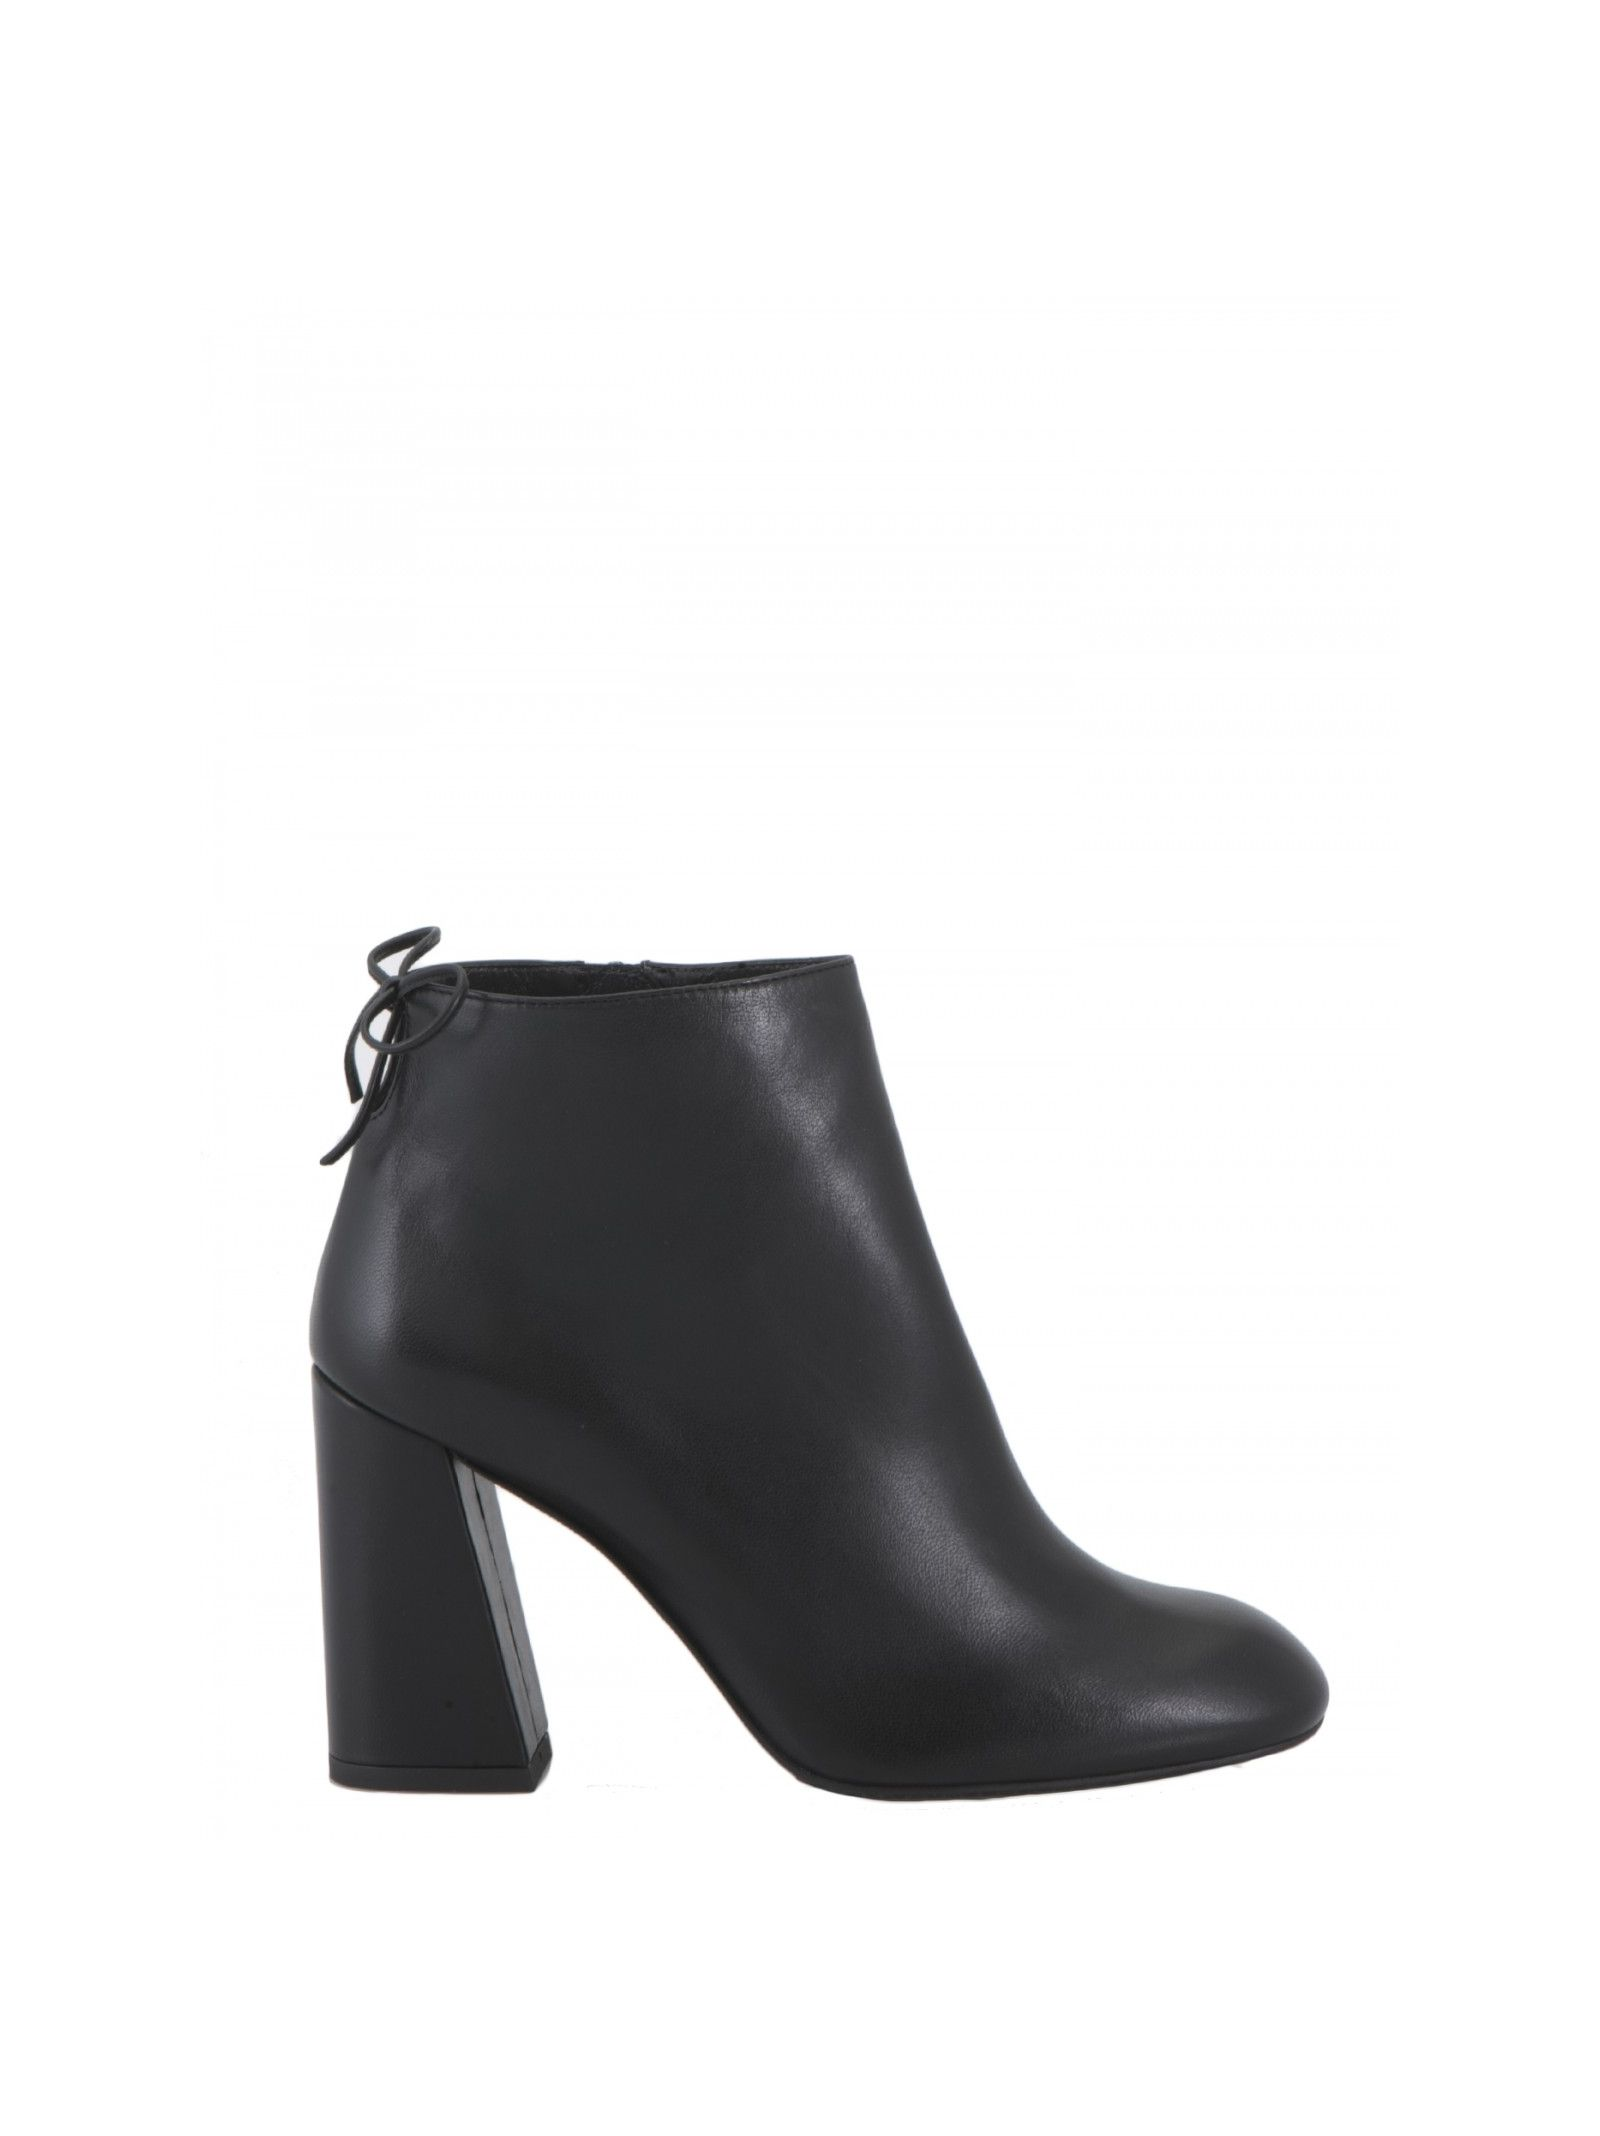 Leather ankle boots Hill: 10 cm Details: Smooth leather ankle boots, Block heel, Round toe, Side zip, Leather laces at back, Leather lining